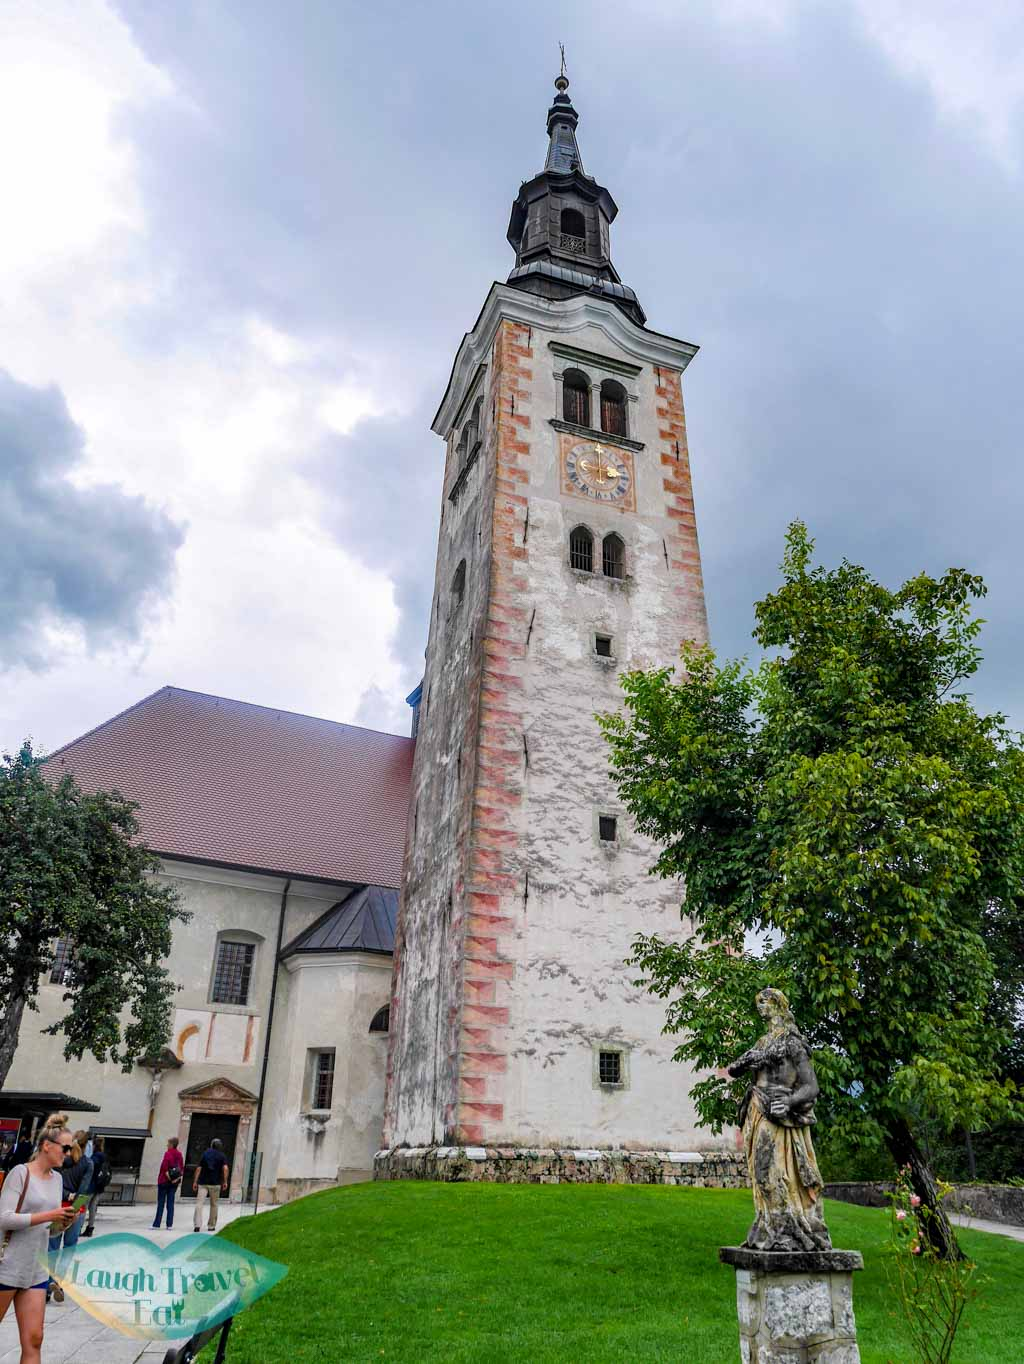 Assumption-of-Mary-Church-on-Bled-Island-Slovenia-laugh-travel-eat